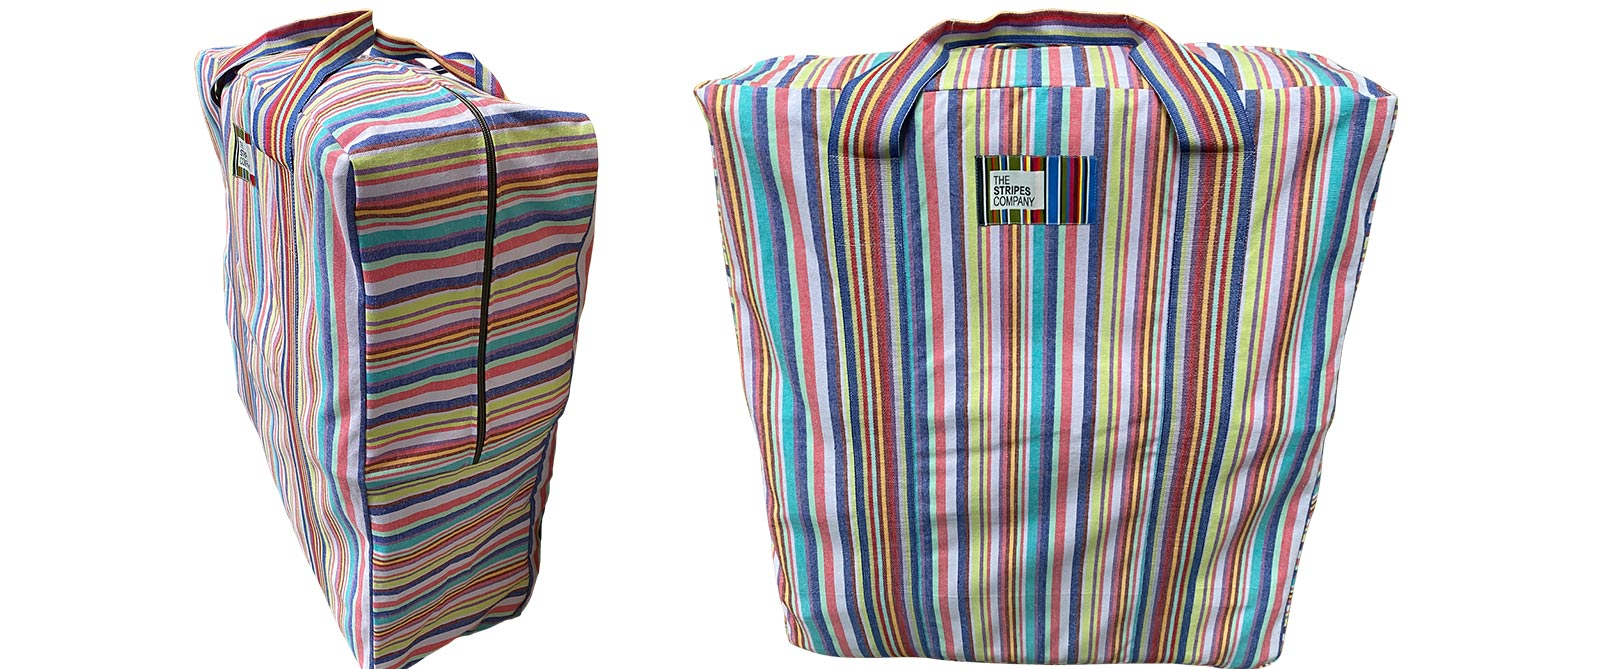 Large Storage Bag for Bedding, Cushions, Textiles, Pillows